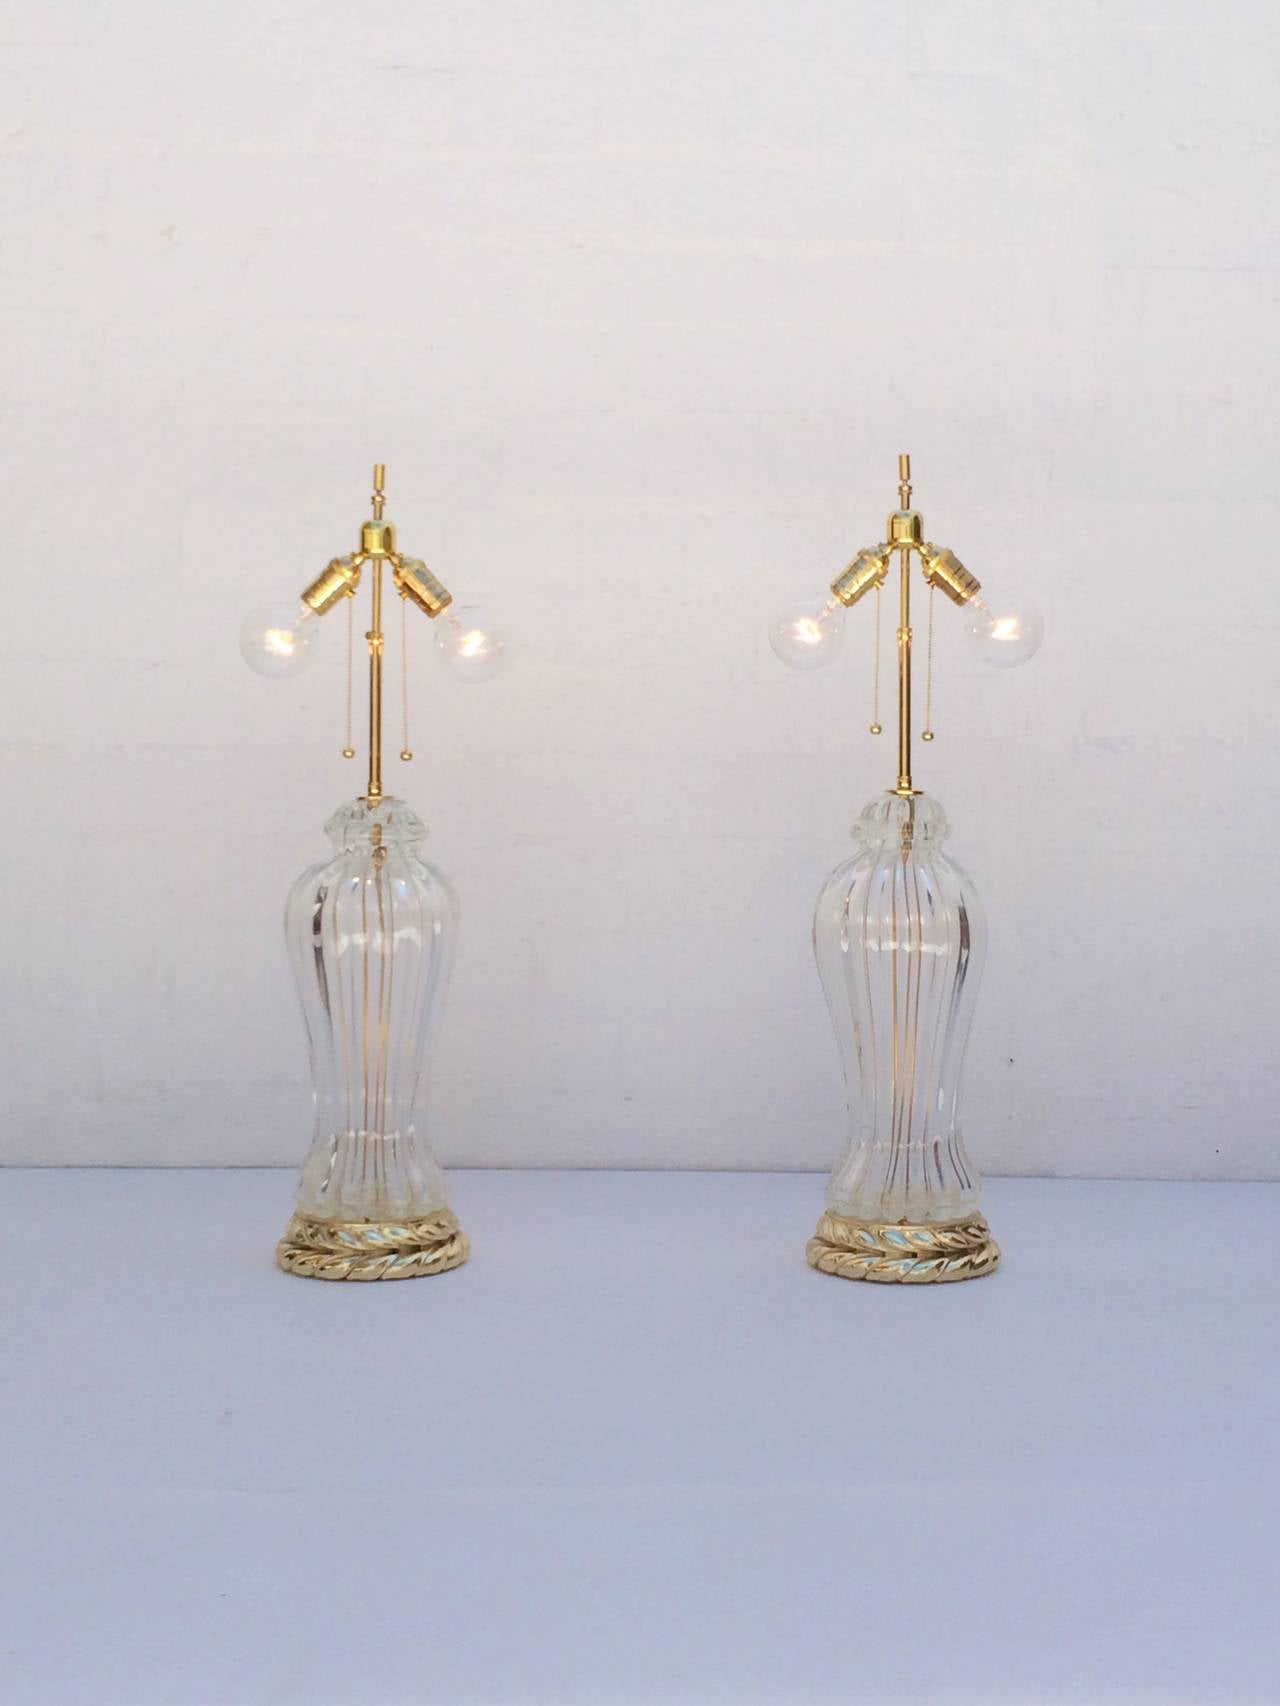 Italian Pair of Murano Glass Table Lamps Made by Marbro Lamp Company For Sale